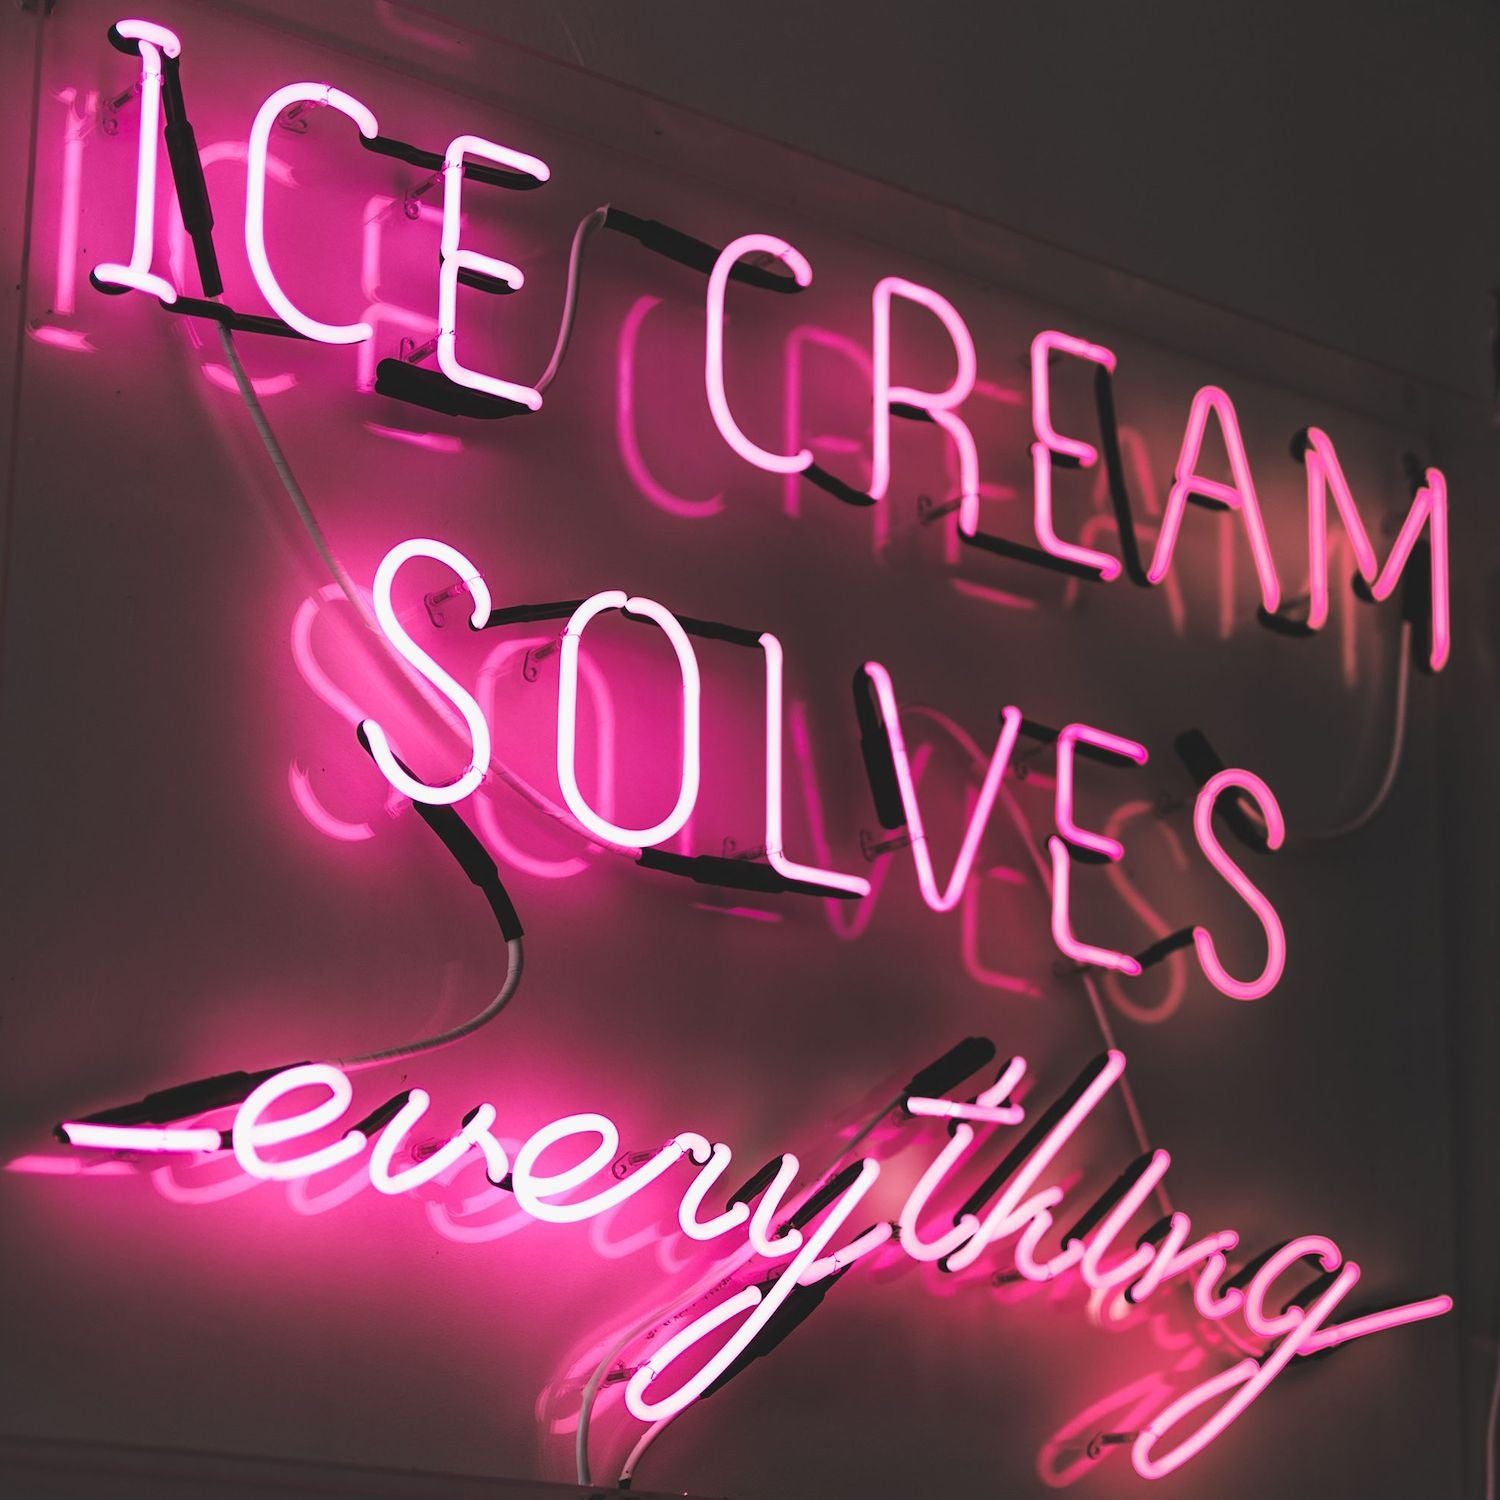 Ice cream solves everything neon sign